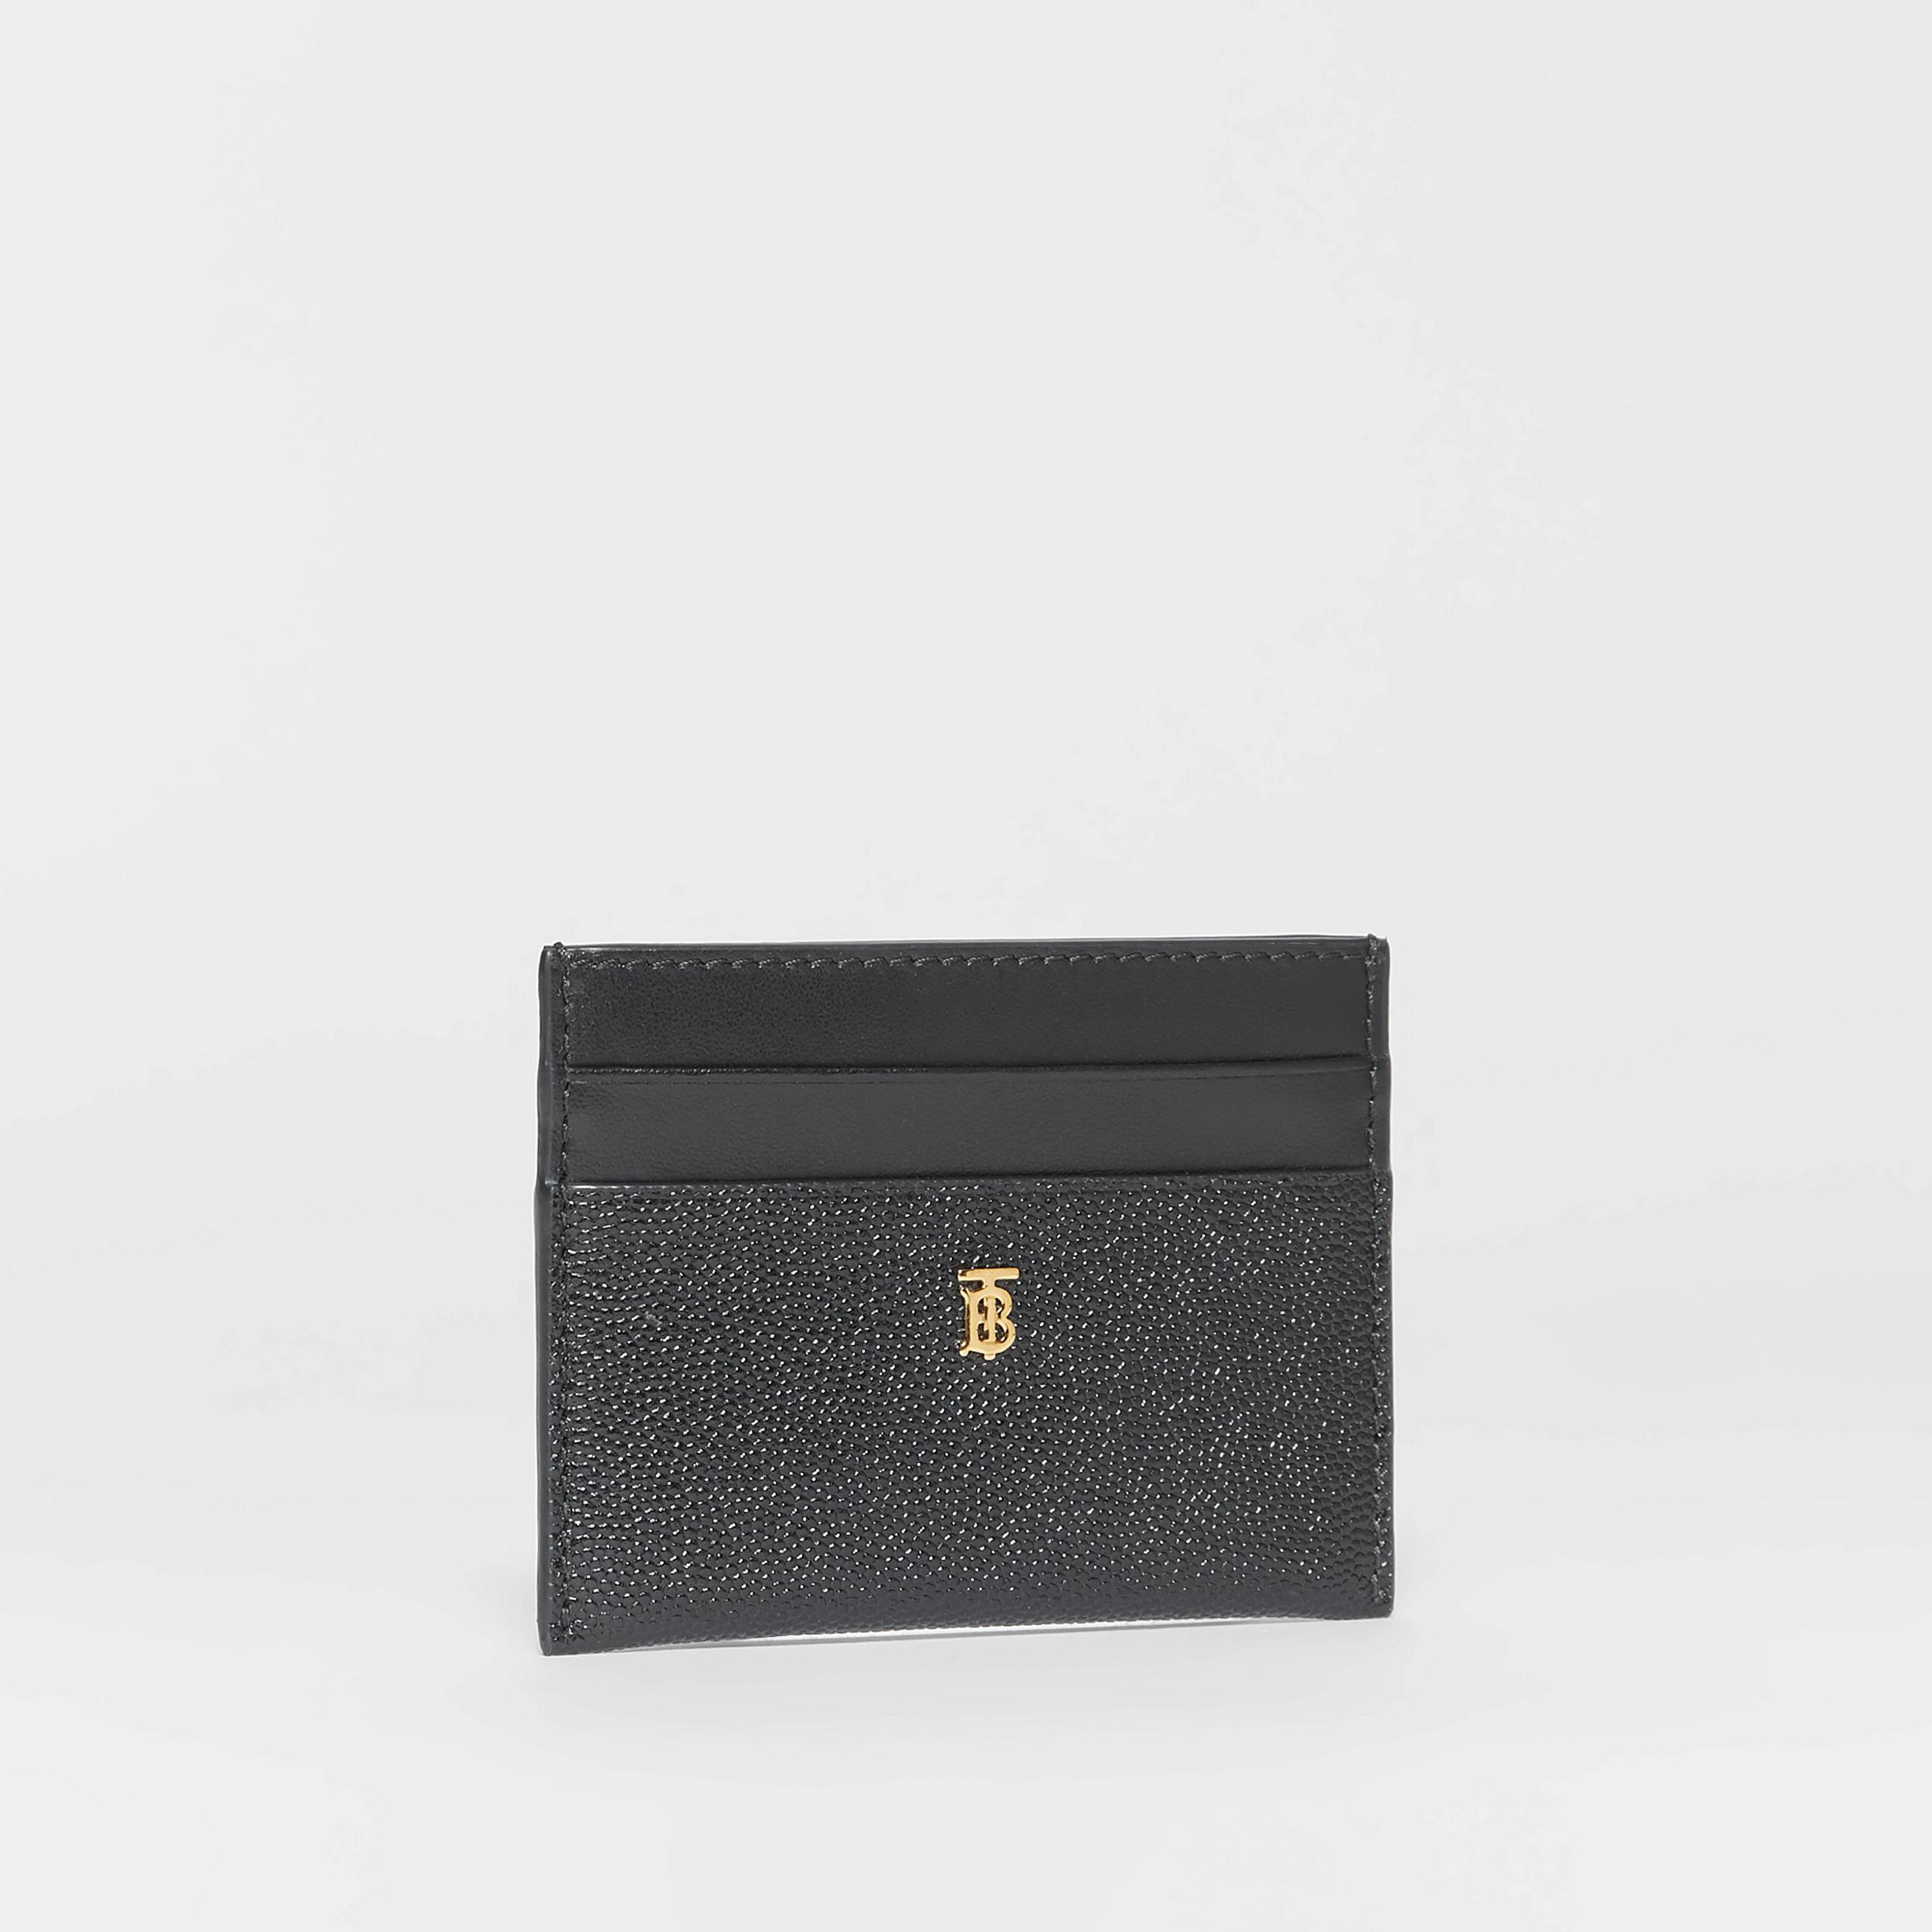 Monogram Motif Leather Card Case in Black - Women | Burberry United Kingdom - 4